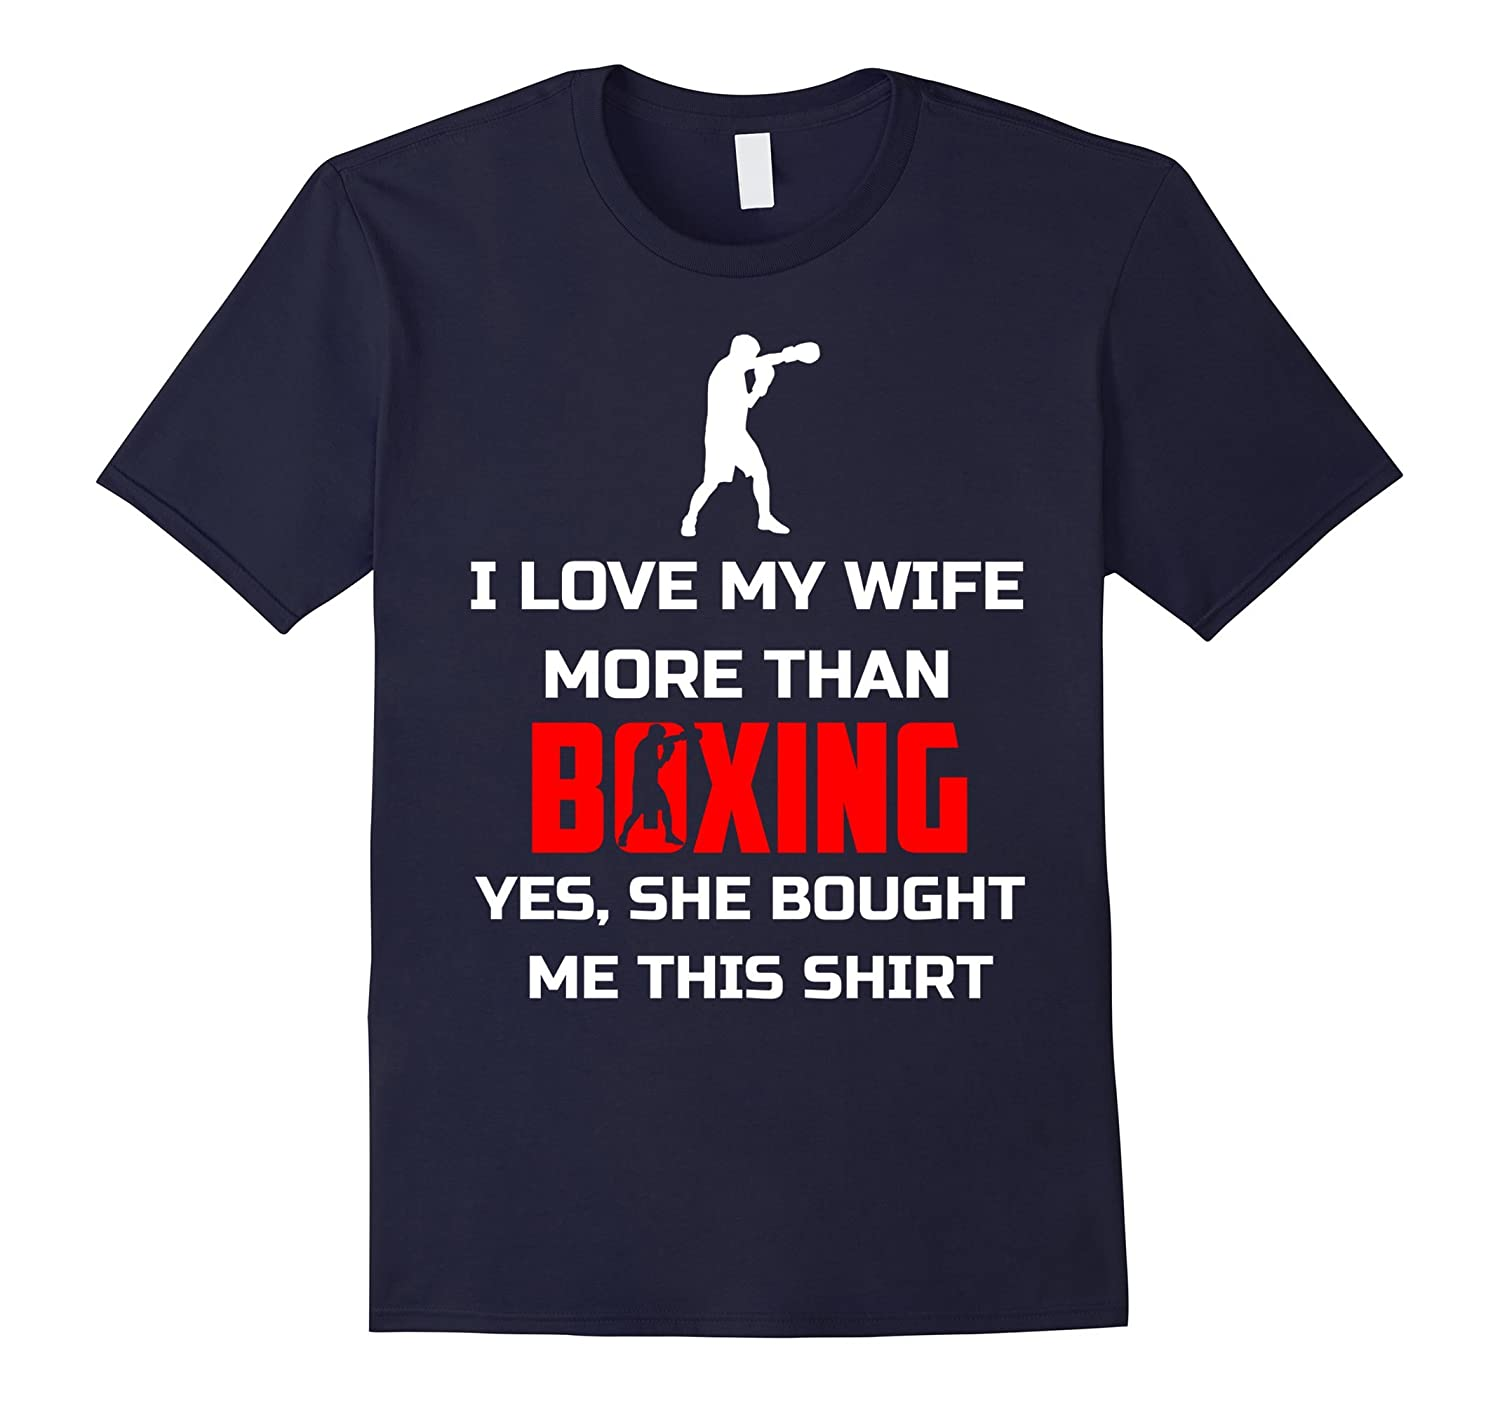 I love my wife more than boxing funny sport shirt t shirt for I love sports t shirt